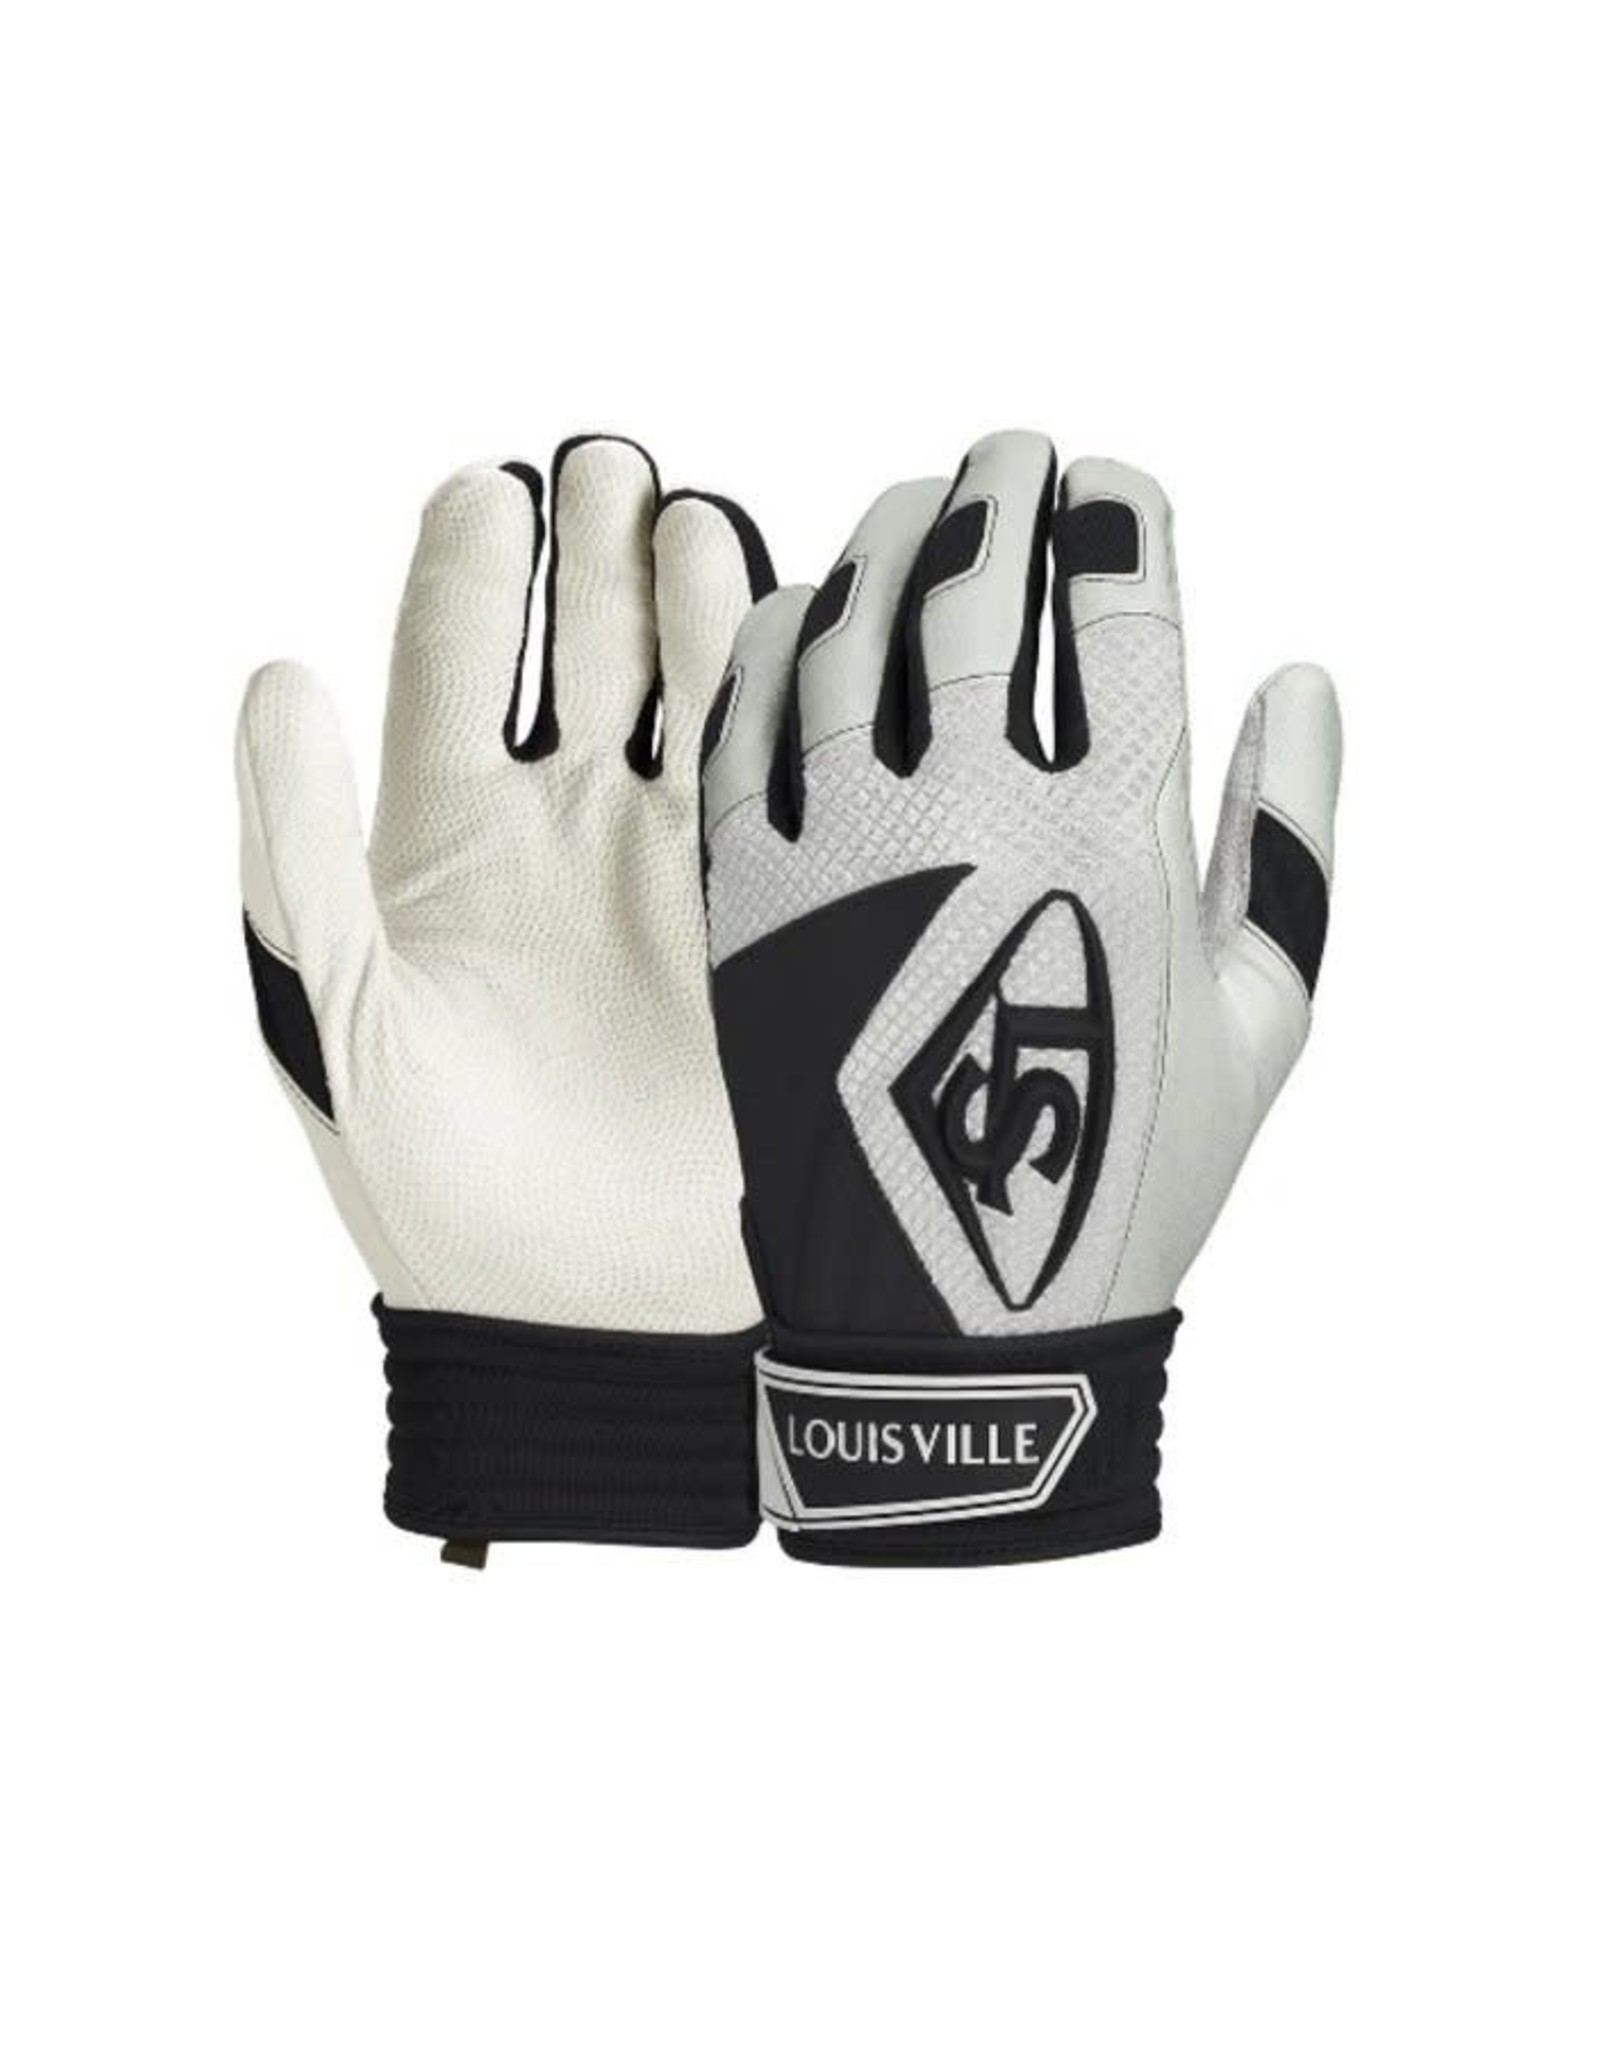 LOUISVILLE SERIES 7 JR BATTING GLOVE